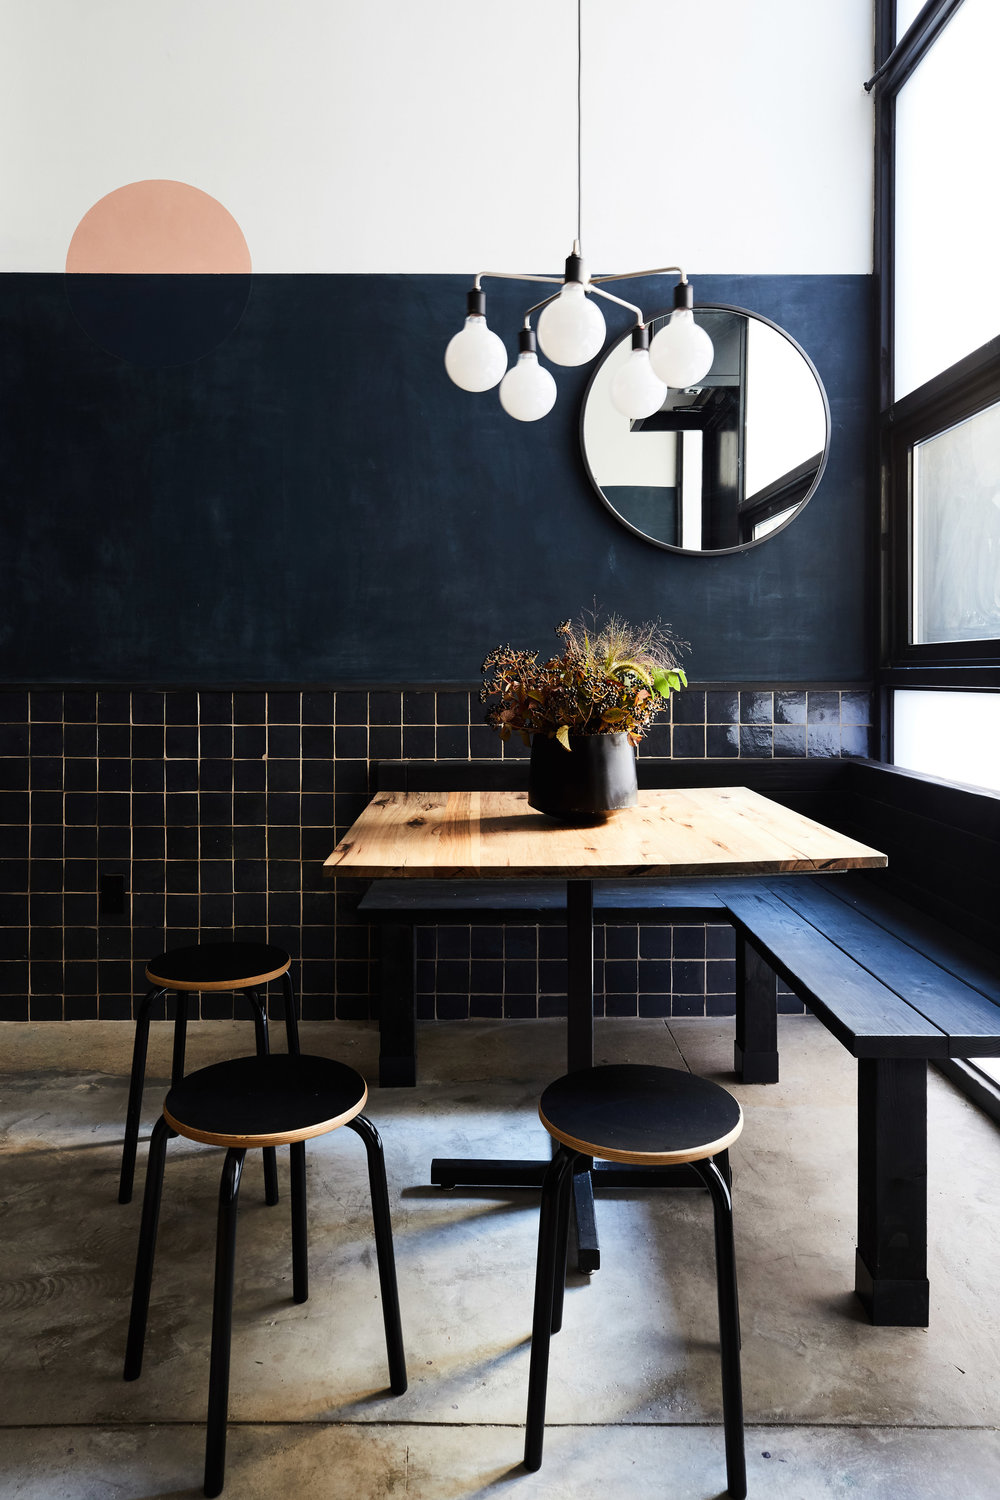 tonchin-restaurant-carpenter-and-mason-interiors_dezeen_2364_col_1.jpg